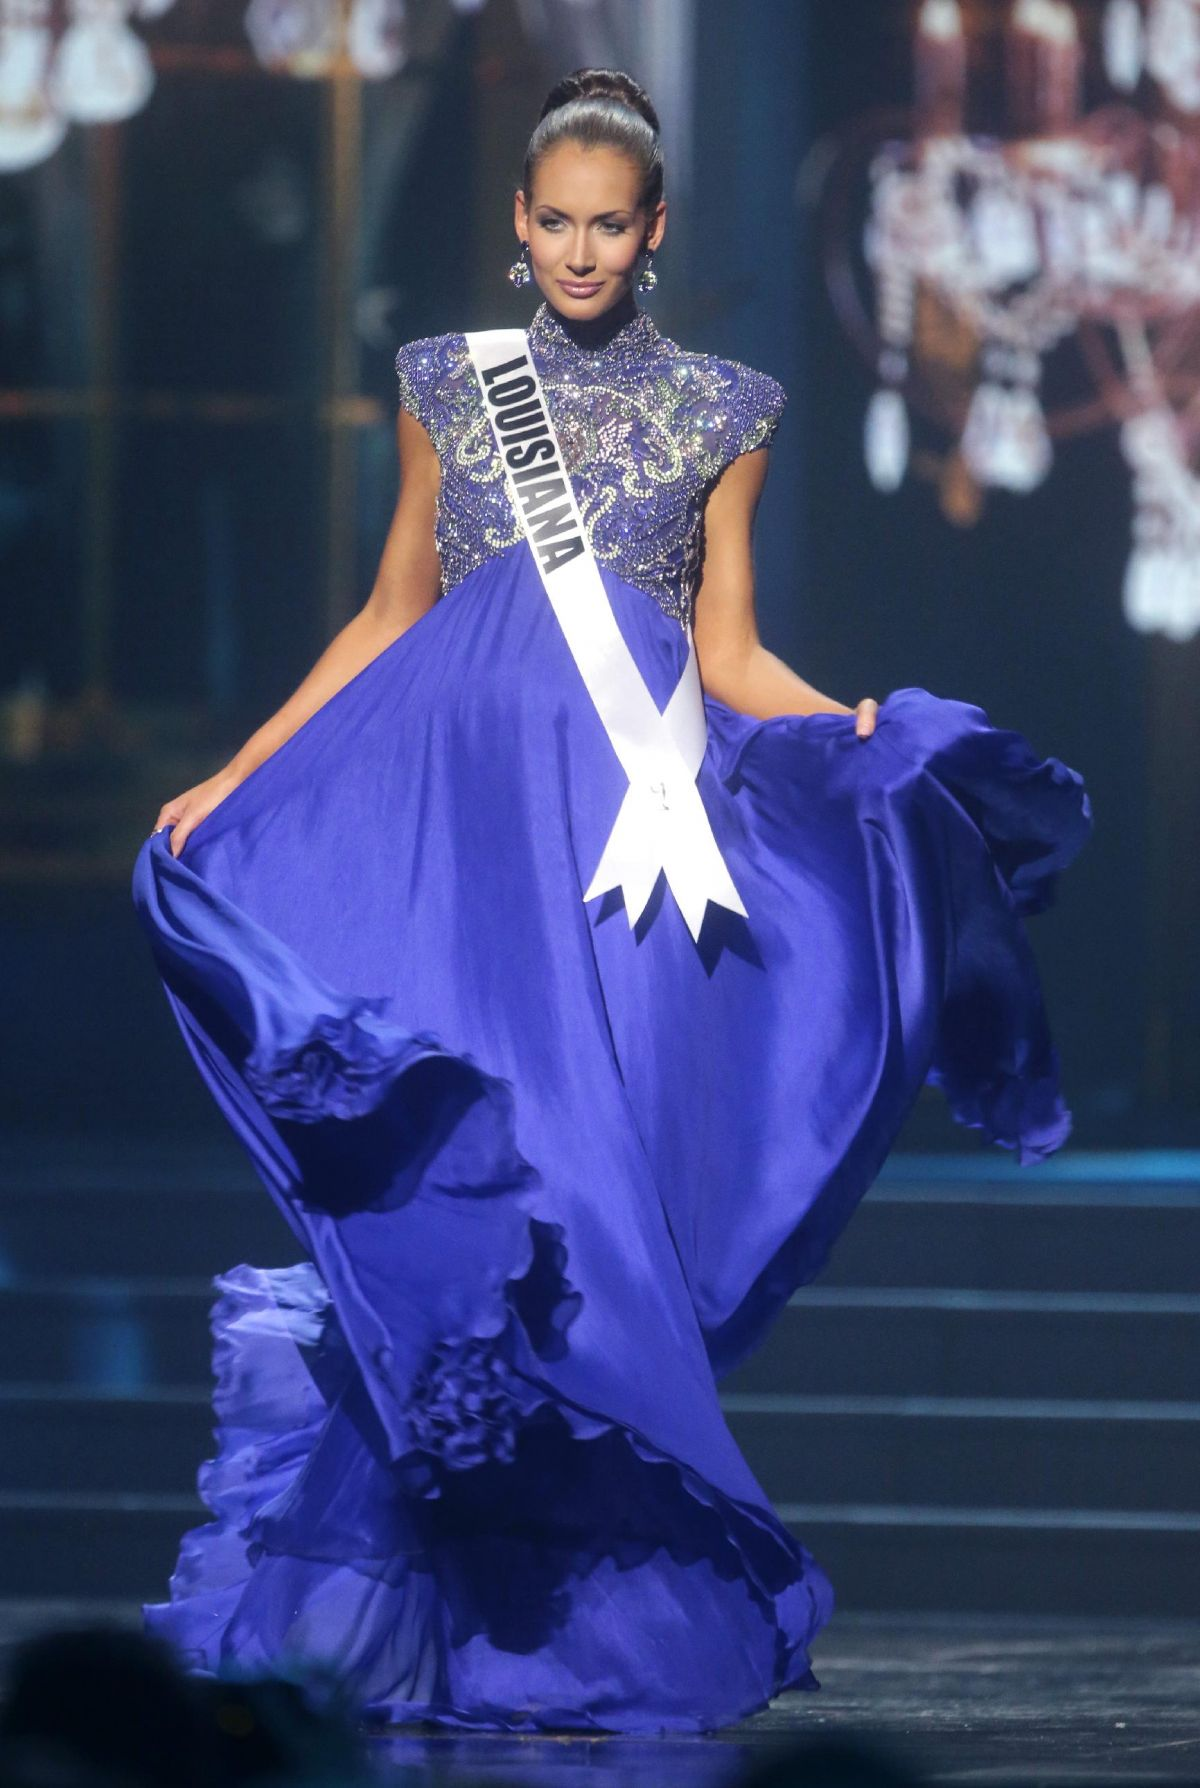 BRITTANY GUIDRY at Miss USA 2014 Preliminary Competition